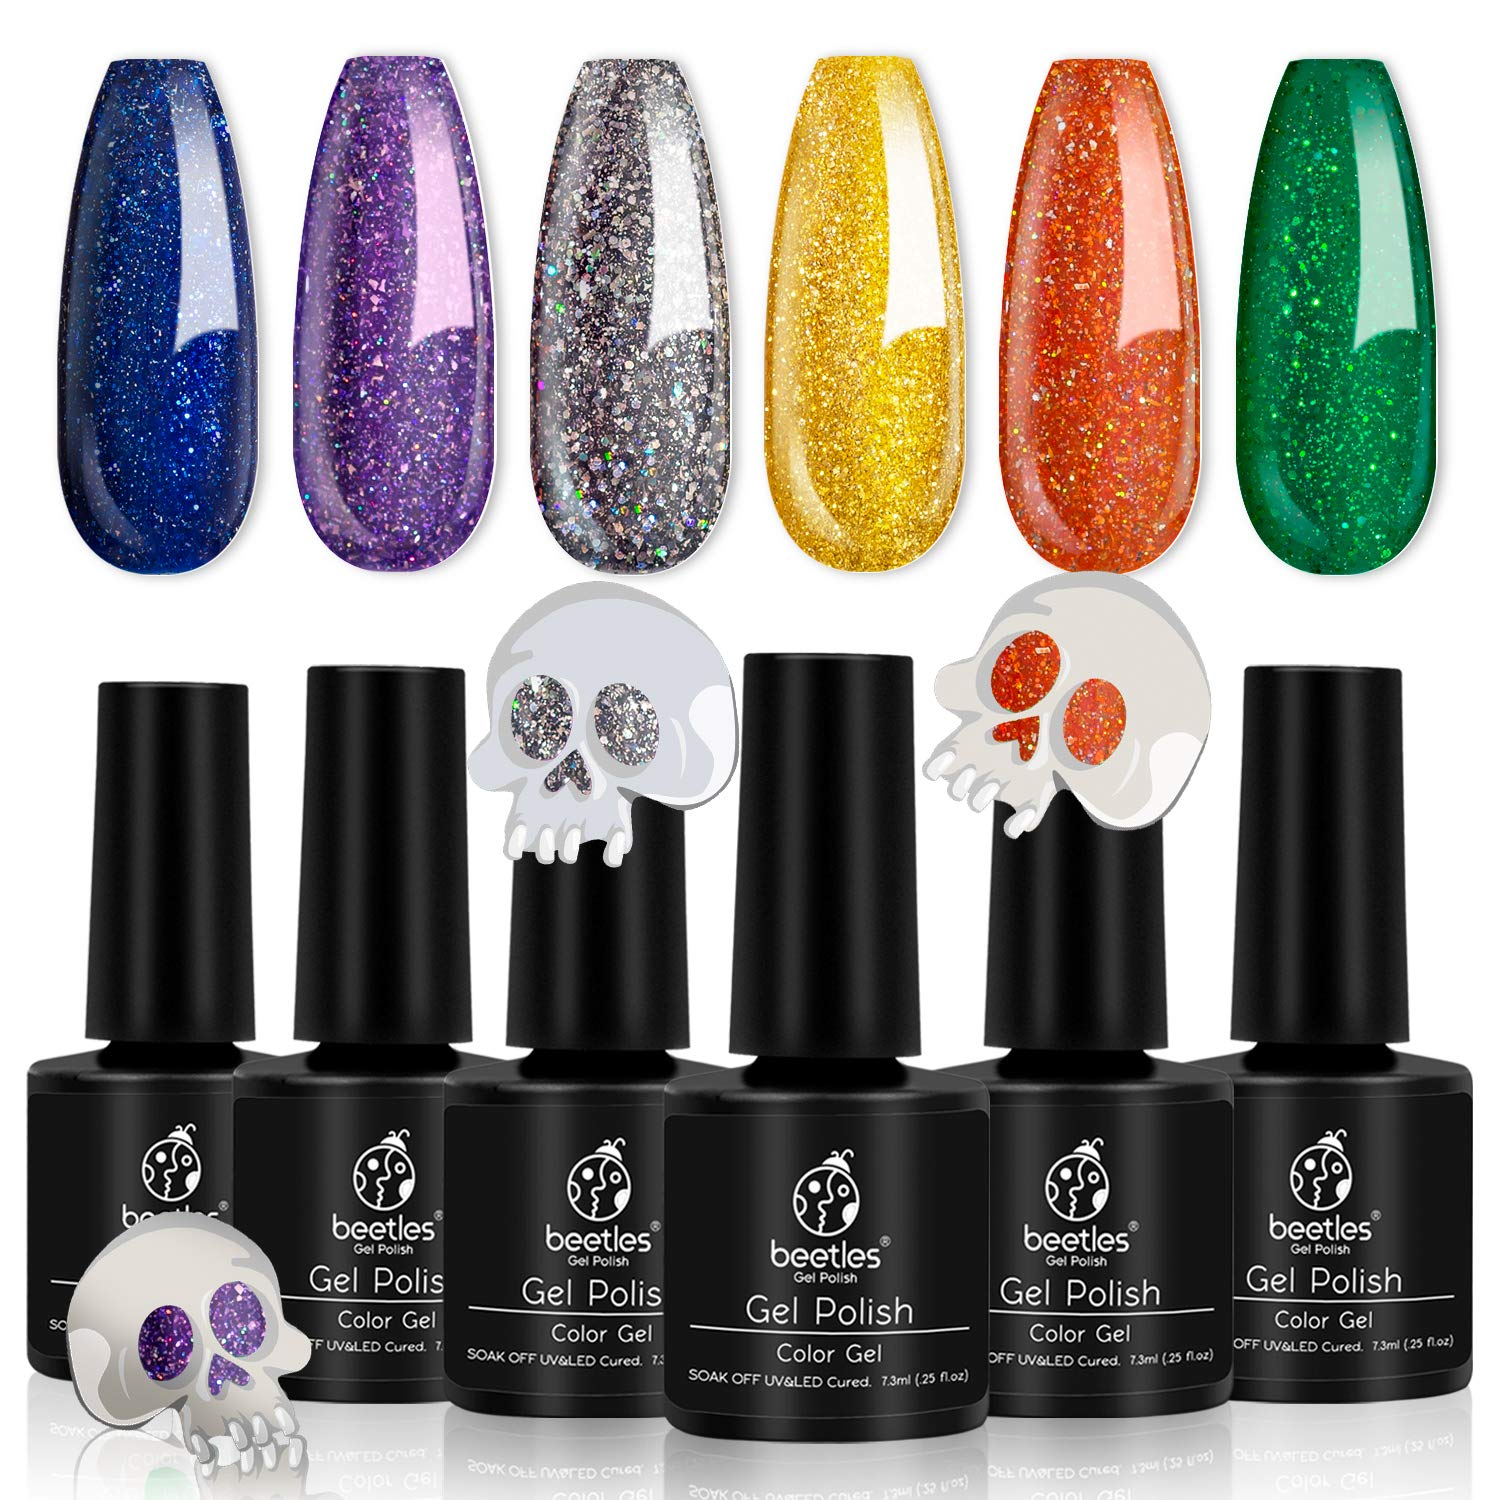 Beetles Sugar Skull Halloween Gel Nail Polish Set, 6 Pcs Purple Gold Glitter Gel Polish Kit Orange Green Nail Polish Gel Kit Art Design Gift Box, Soak Off UV LED Gel Nail Lamp Cured, 7.3ml Each Bottle by beetles Gel Polish